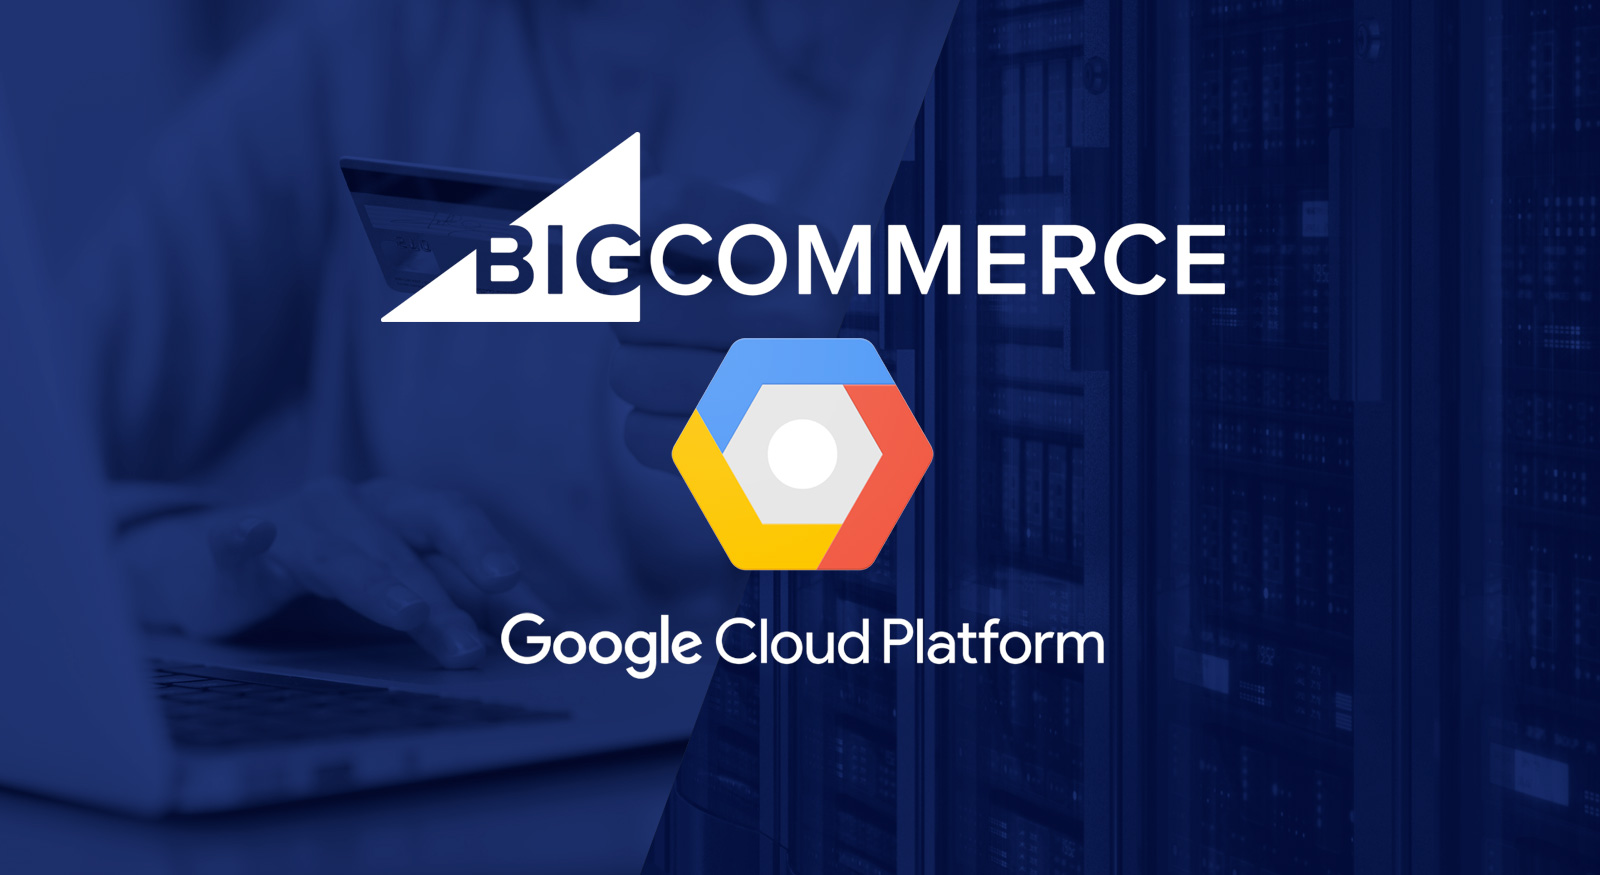 bigcommerce-google-cloud-platform-news-brisbane